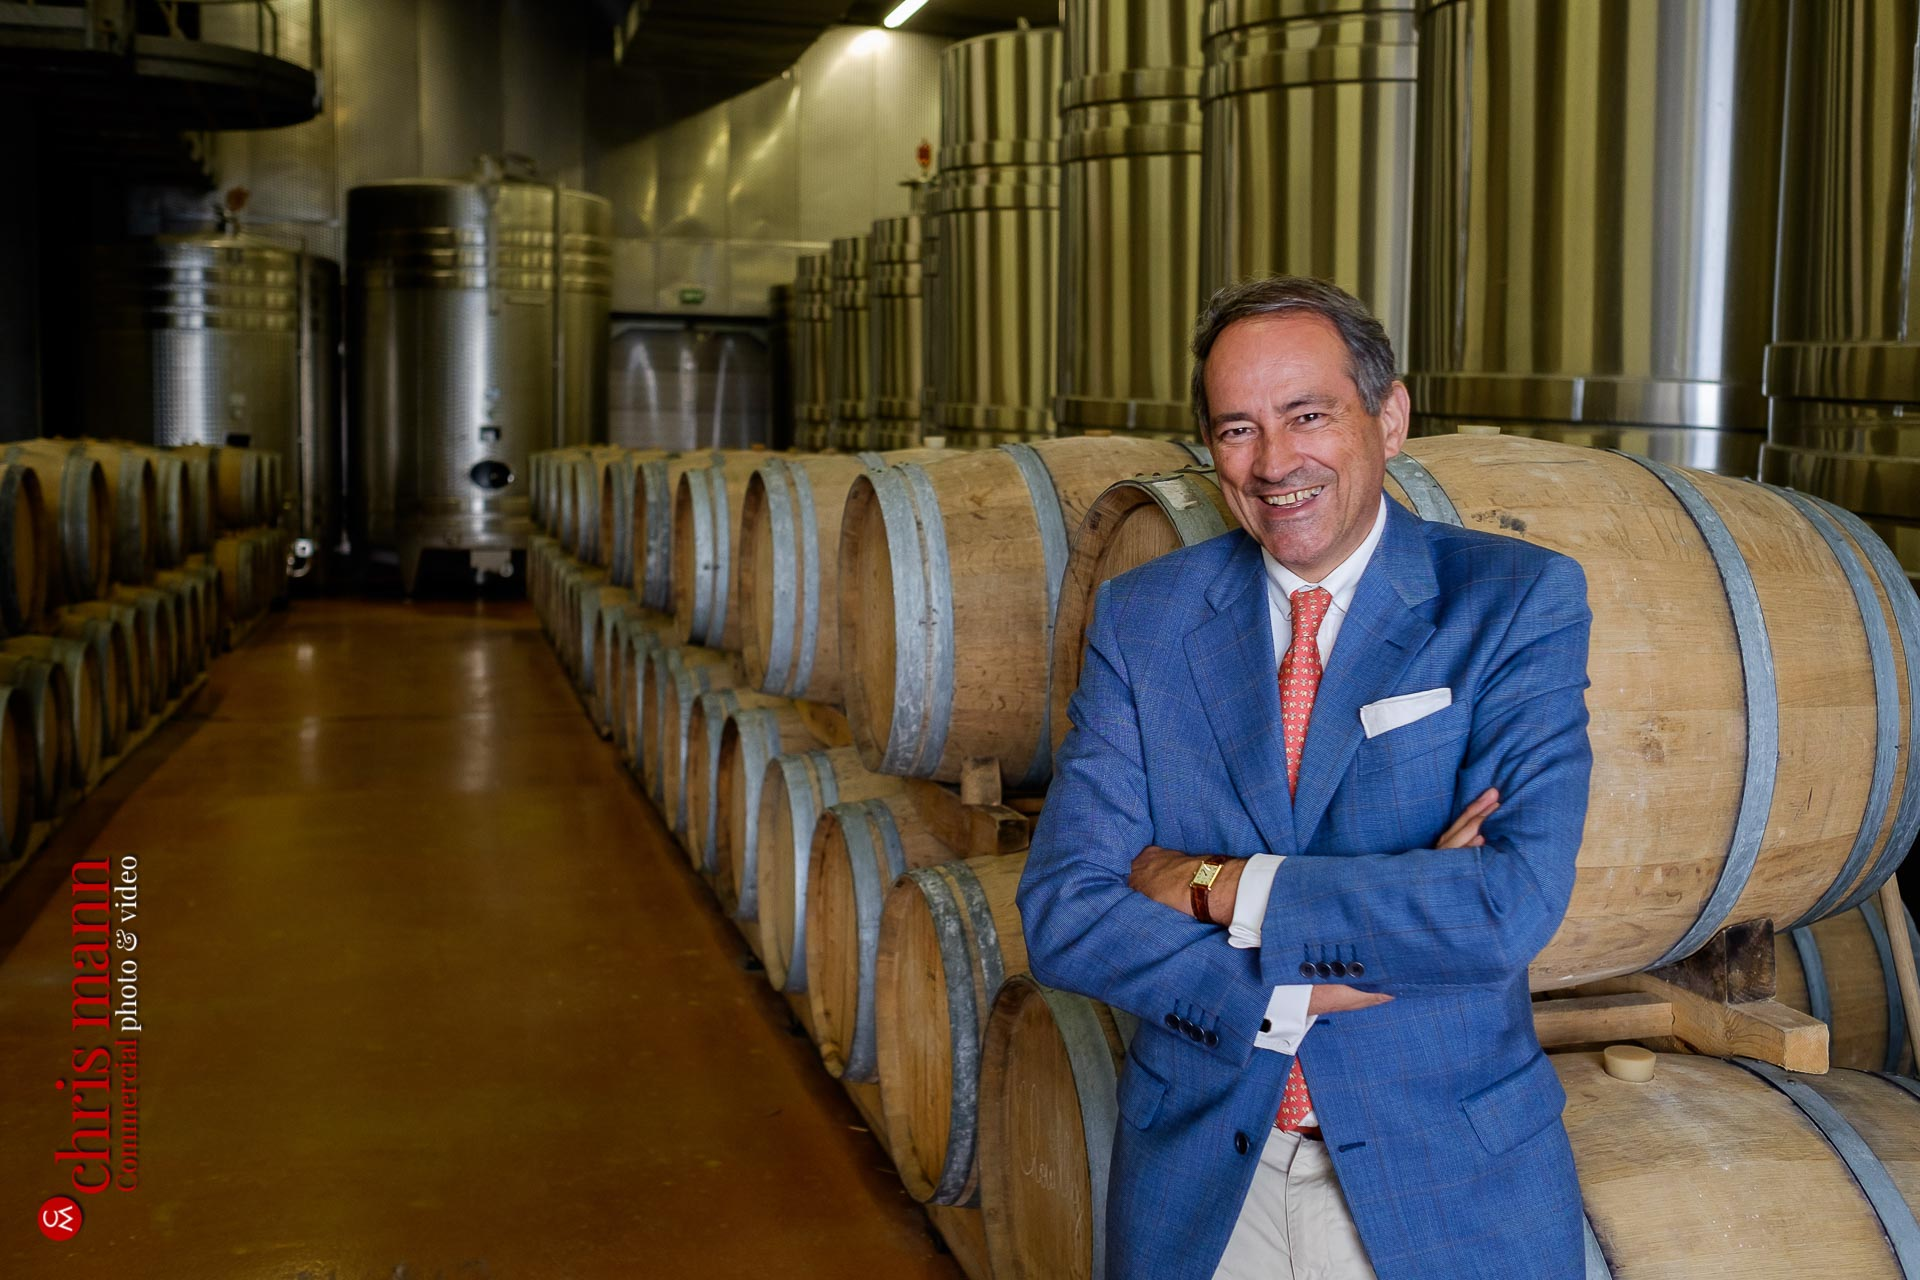 Bruno Paillard with barrels of champagne Reims Picardy France